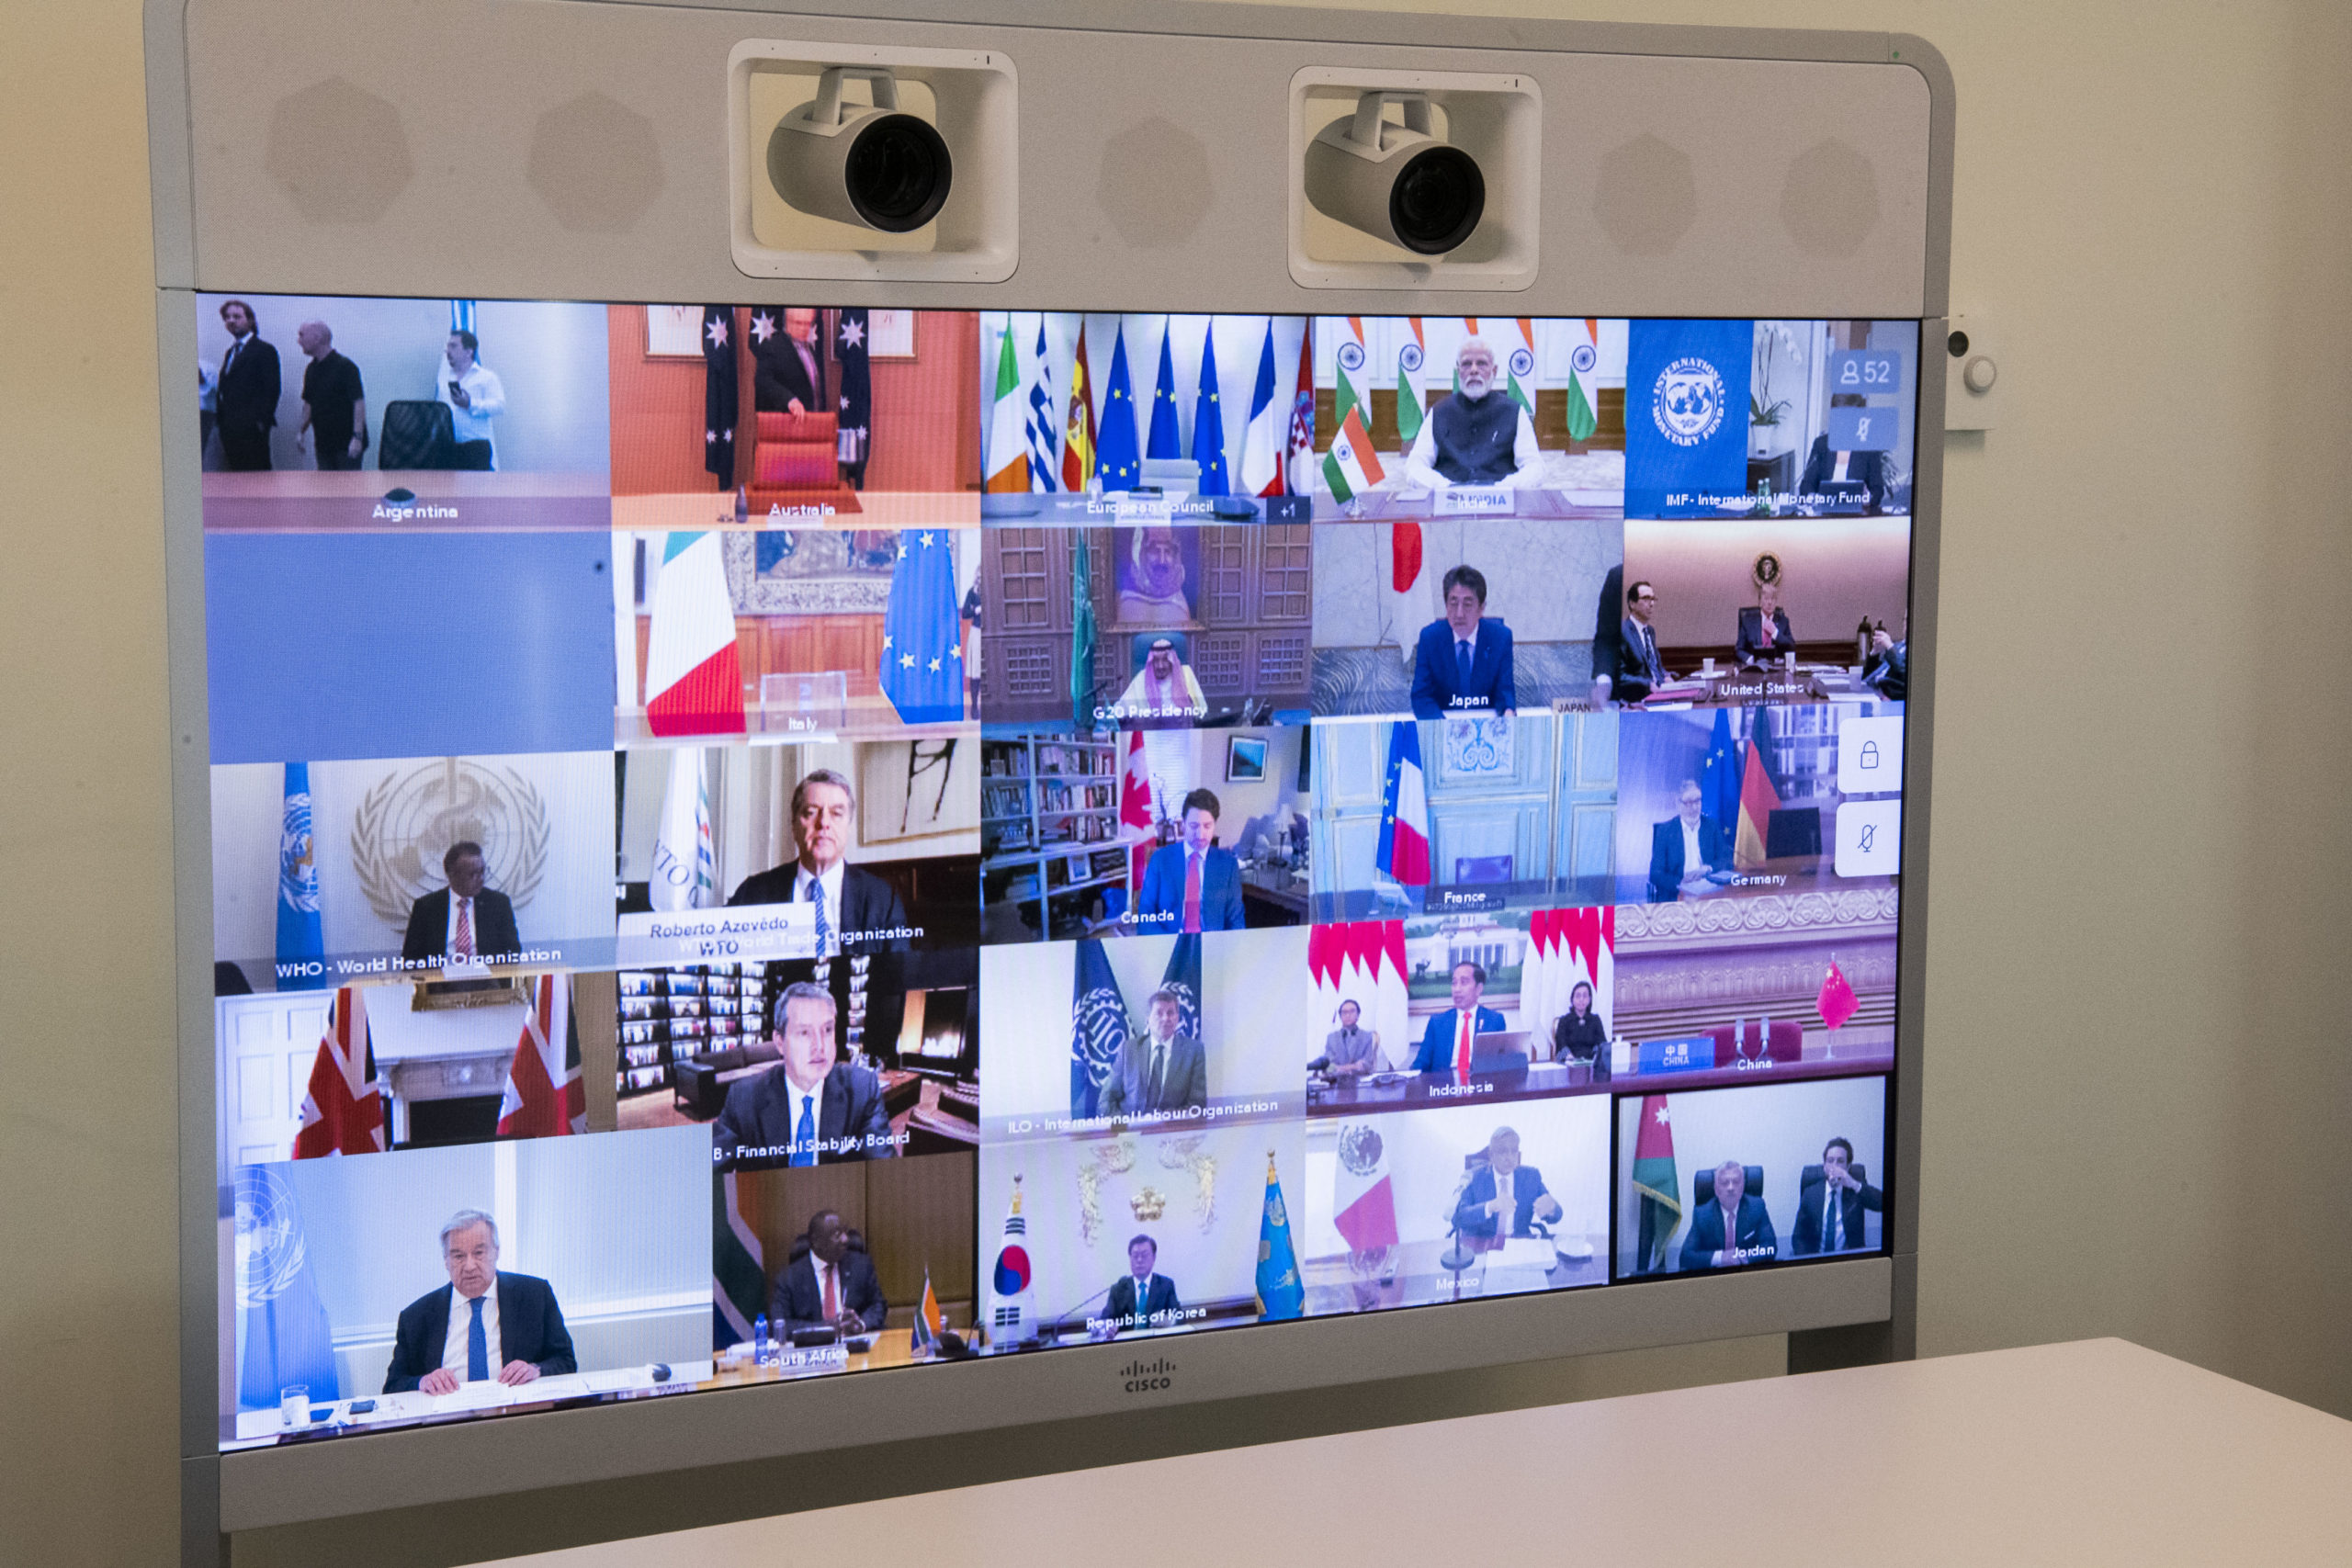 A view of the screen in the Secretary-General António Guterres' conference room as he takes part in the extraordinary Virtual Leaders' Summit of the Group of Twenty (G-20) on the Covid-19 Pandemic. Credit: UN Photo/Evan Schneider